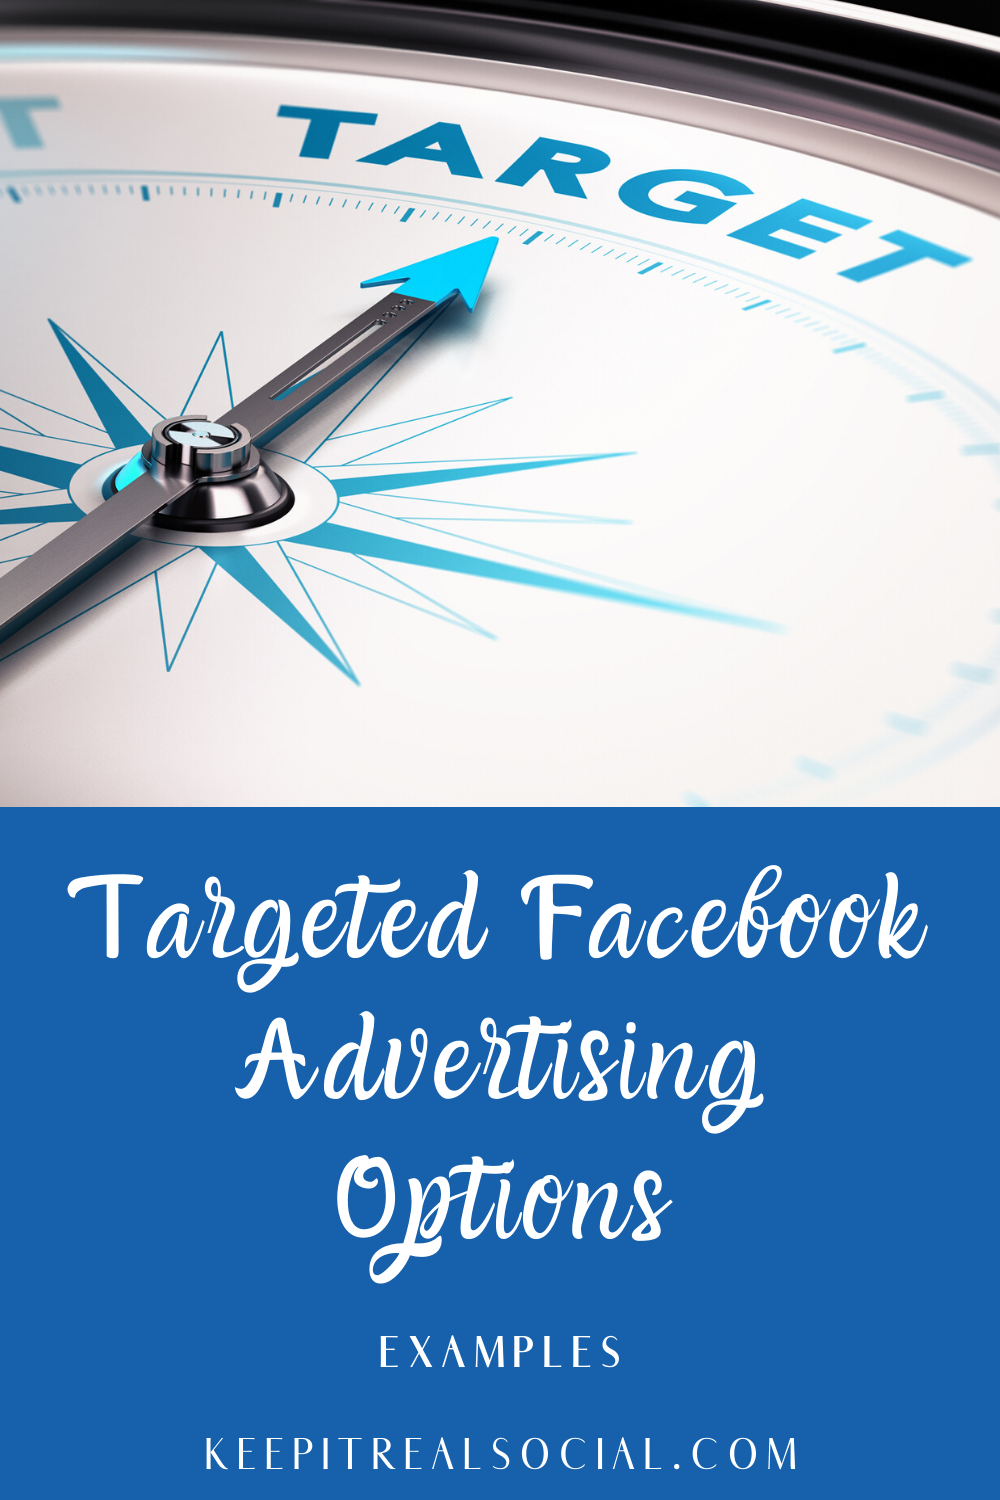 Targeted-Facebook-Advertising-Options-Keep-It-Real-Social-Petoskey